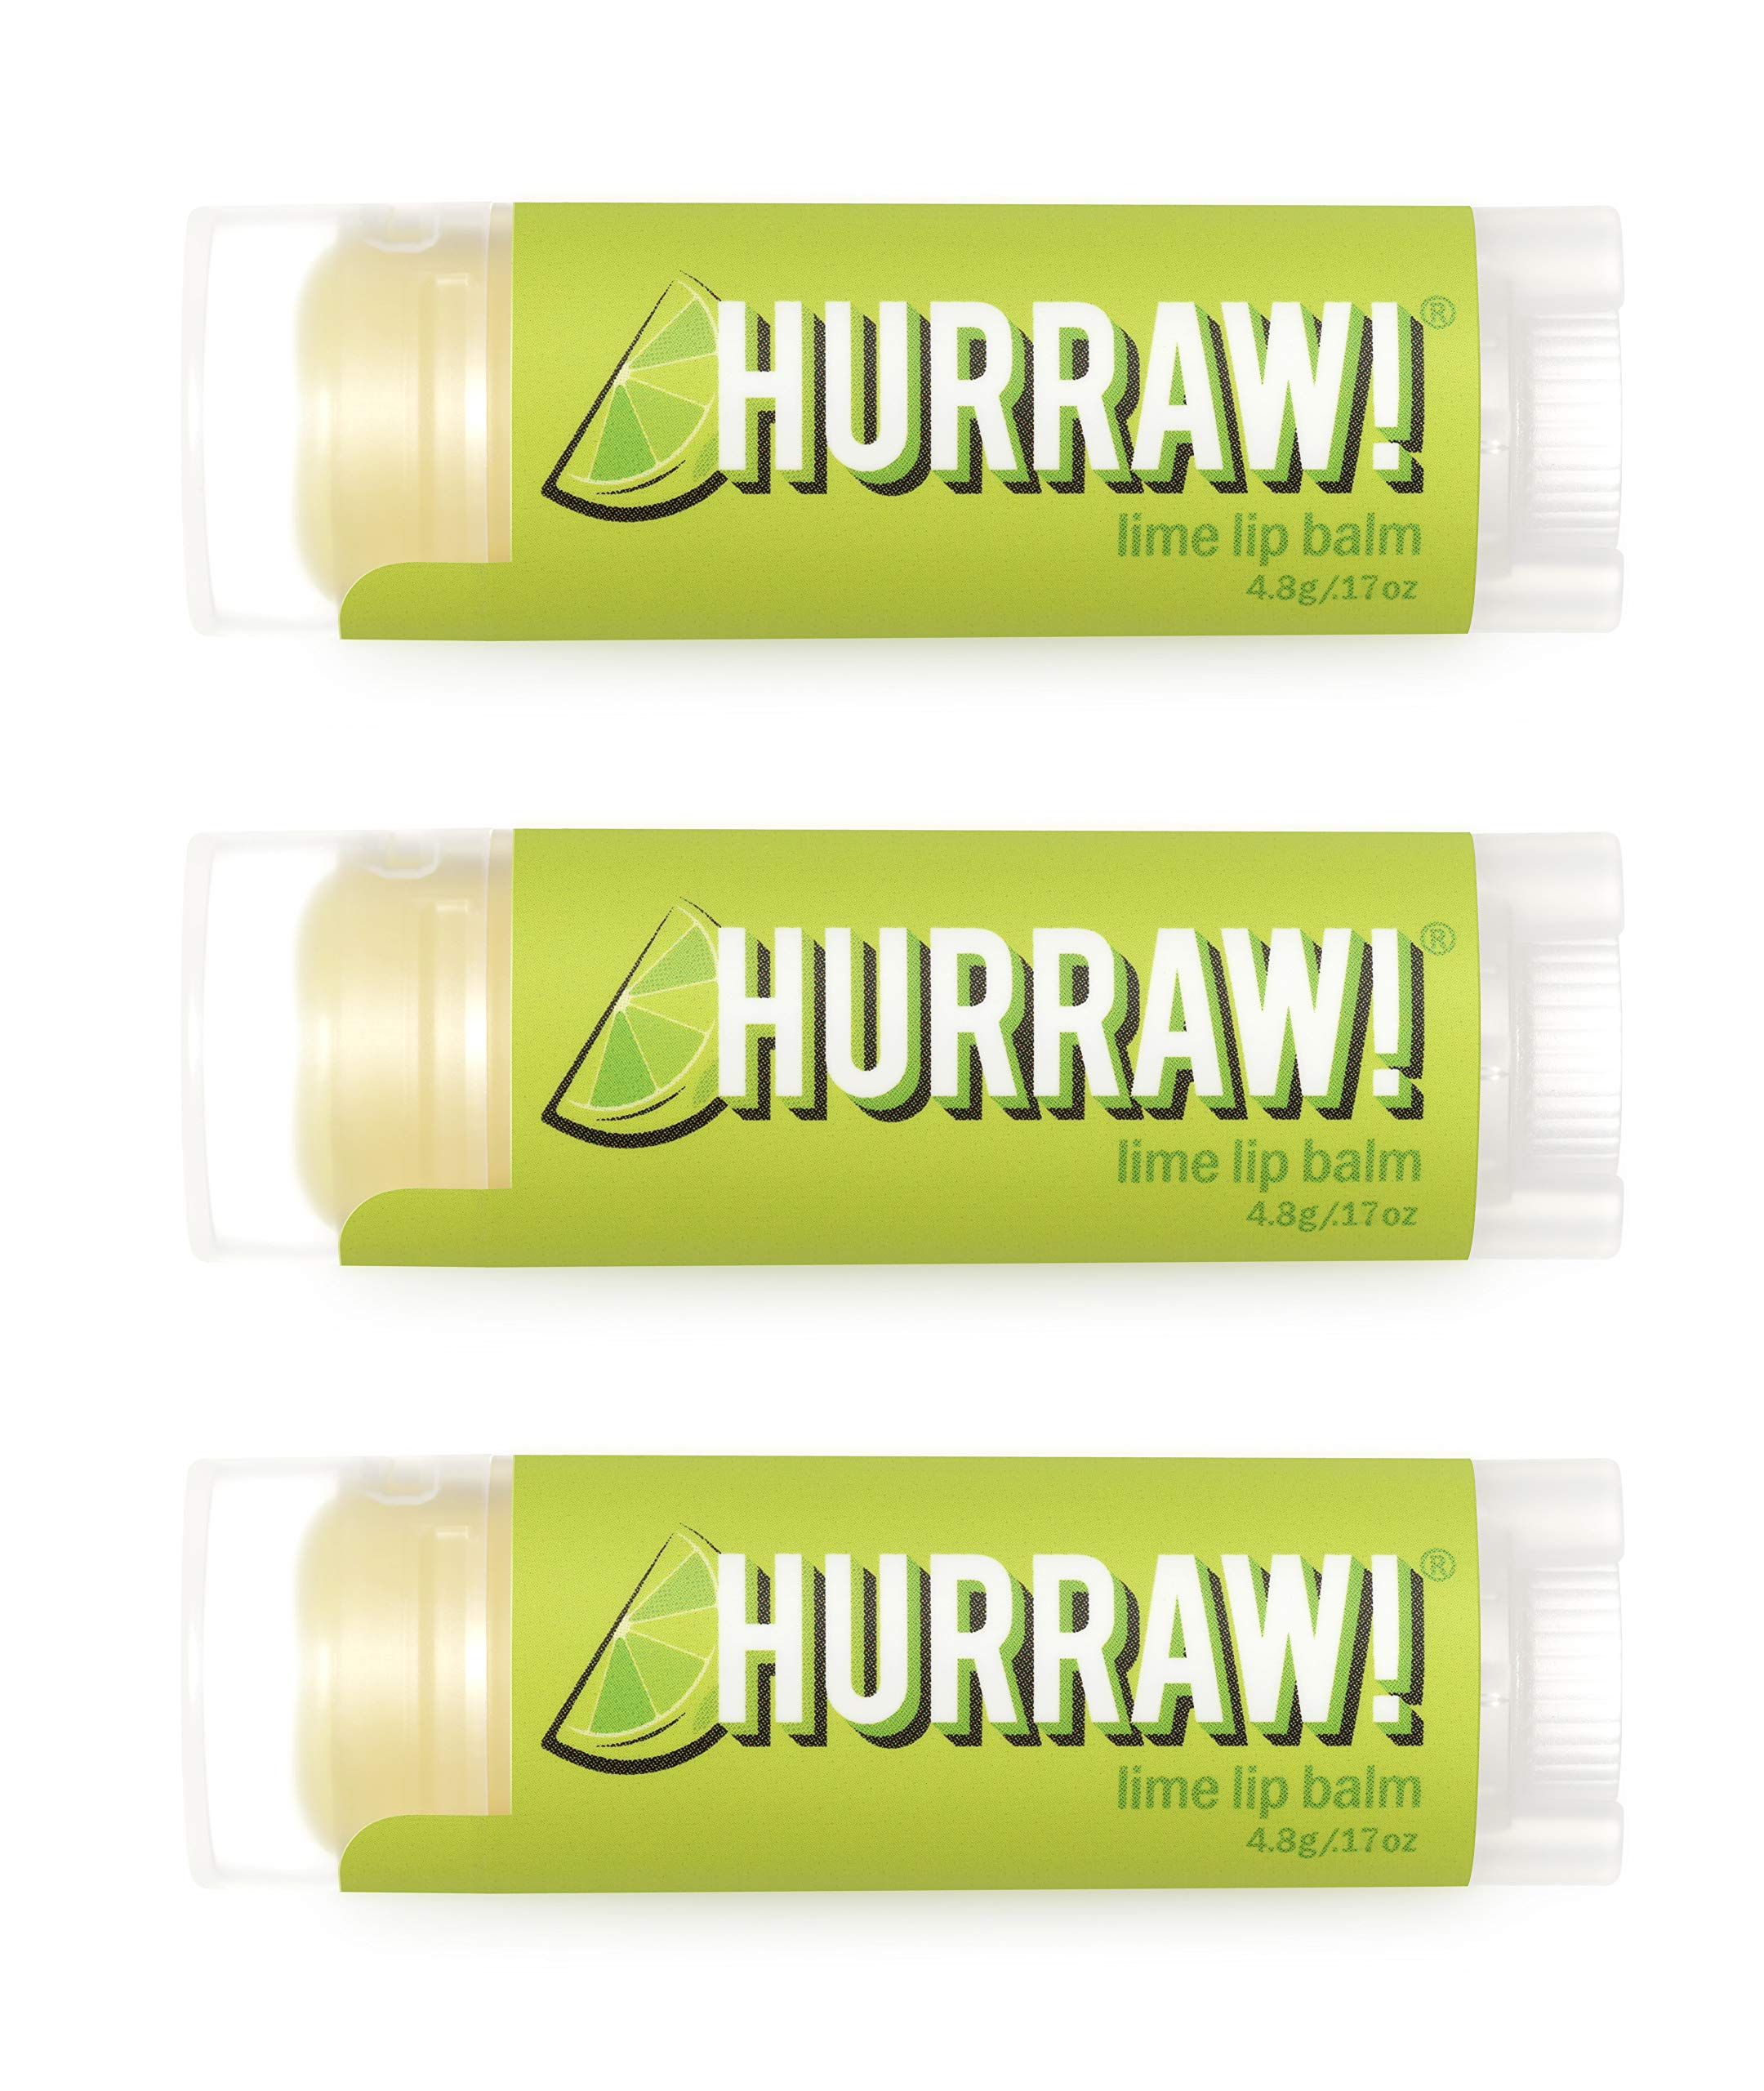 Hurraw Lime Lip Balm, 3 Pack – Organic, Certified Vegan, Cruelty and Gluten Free. Non-GMO, 100% Natural Ingredients. Bee, Shea, Soy and Palm Free. Made in USA